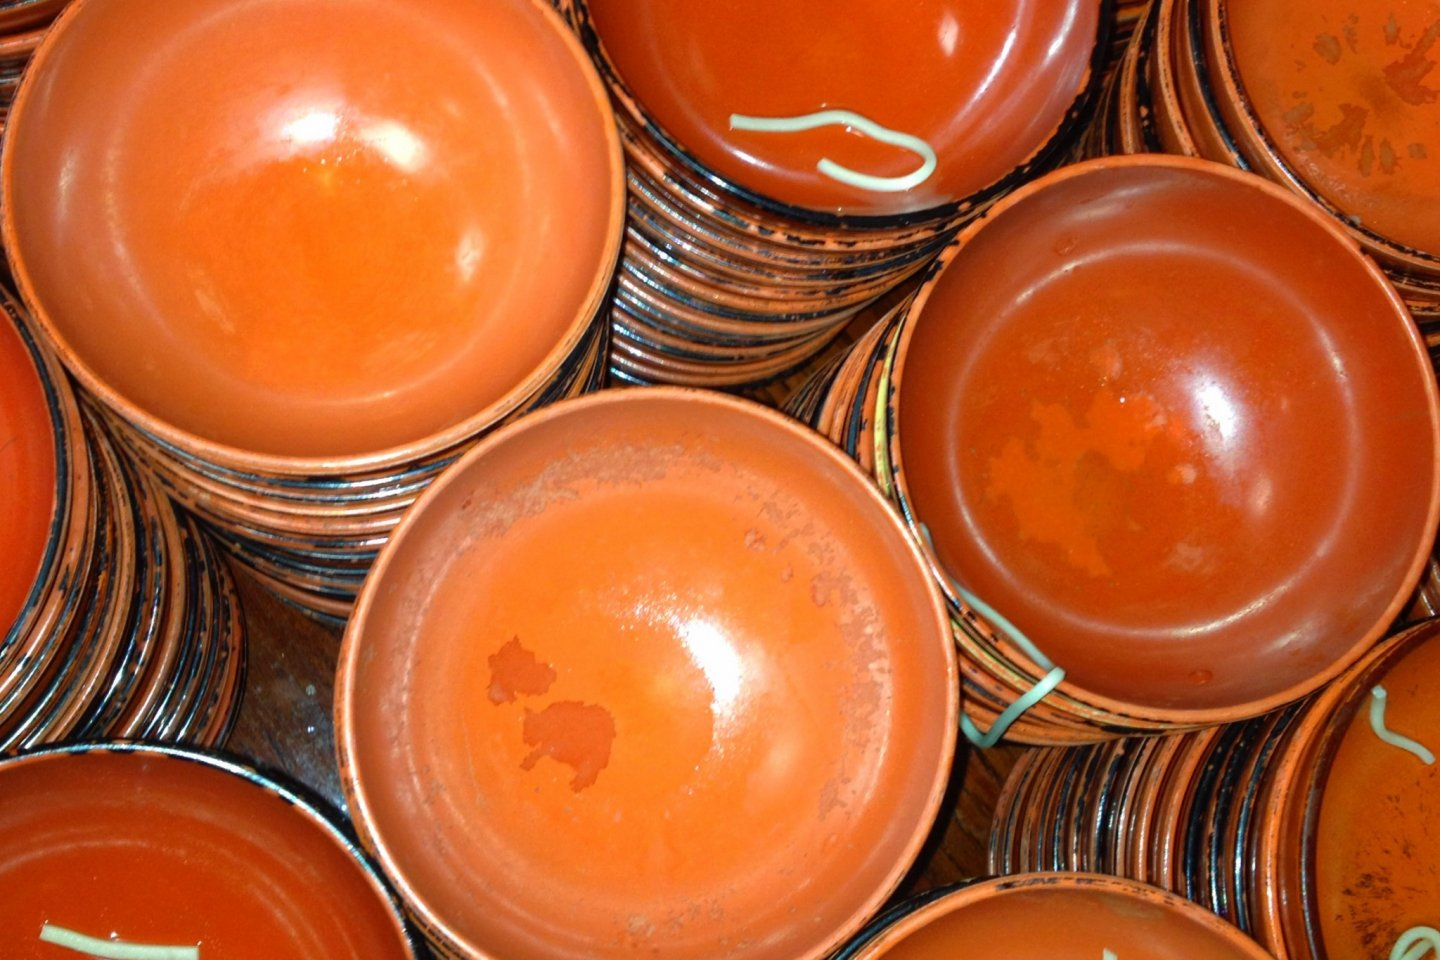 Stacks of empty bowls will taunt you as you eat.